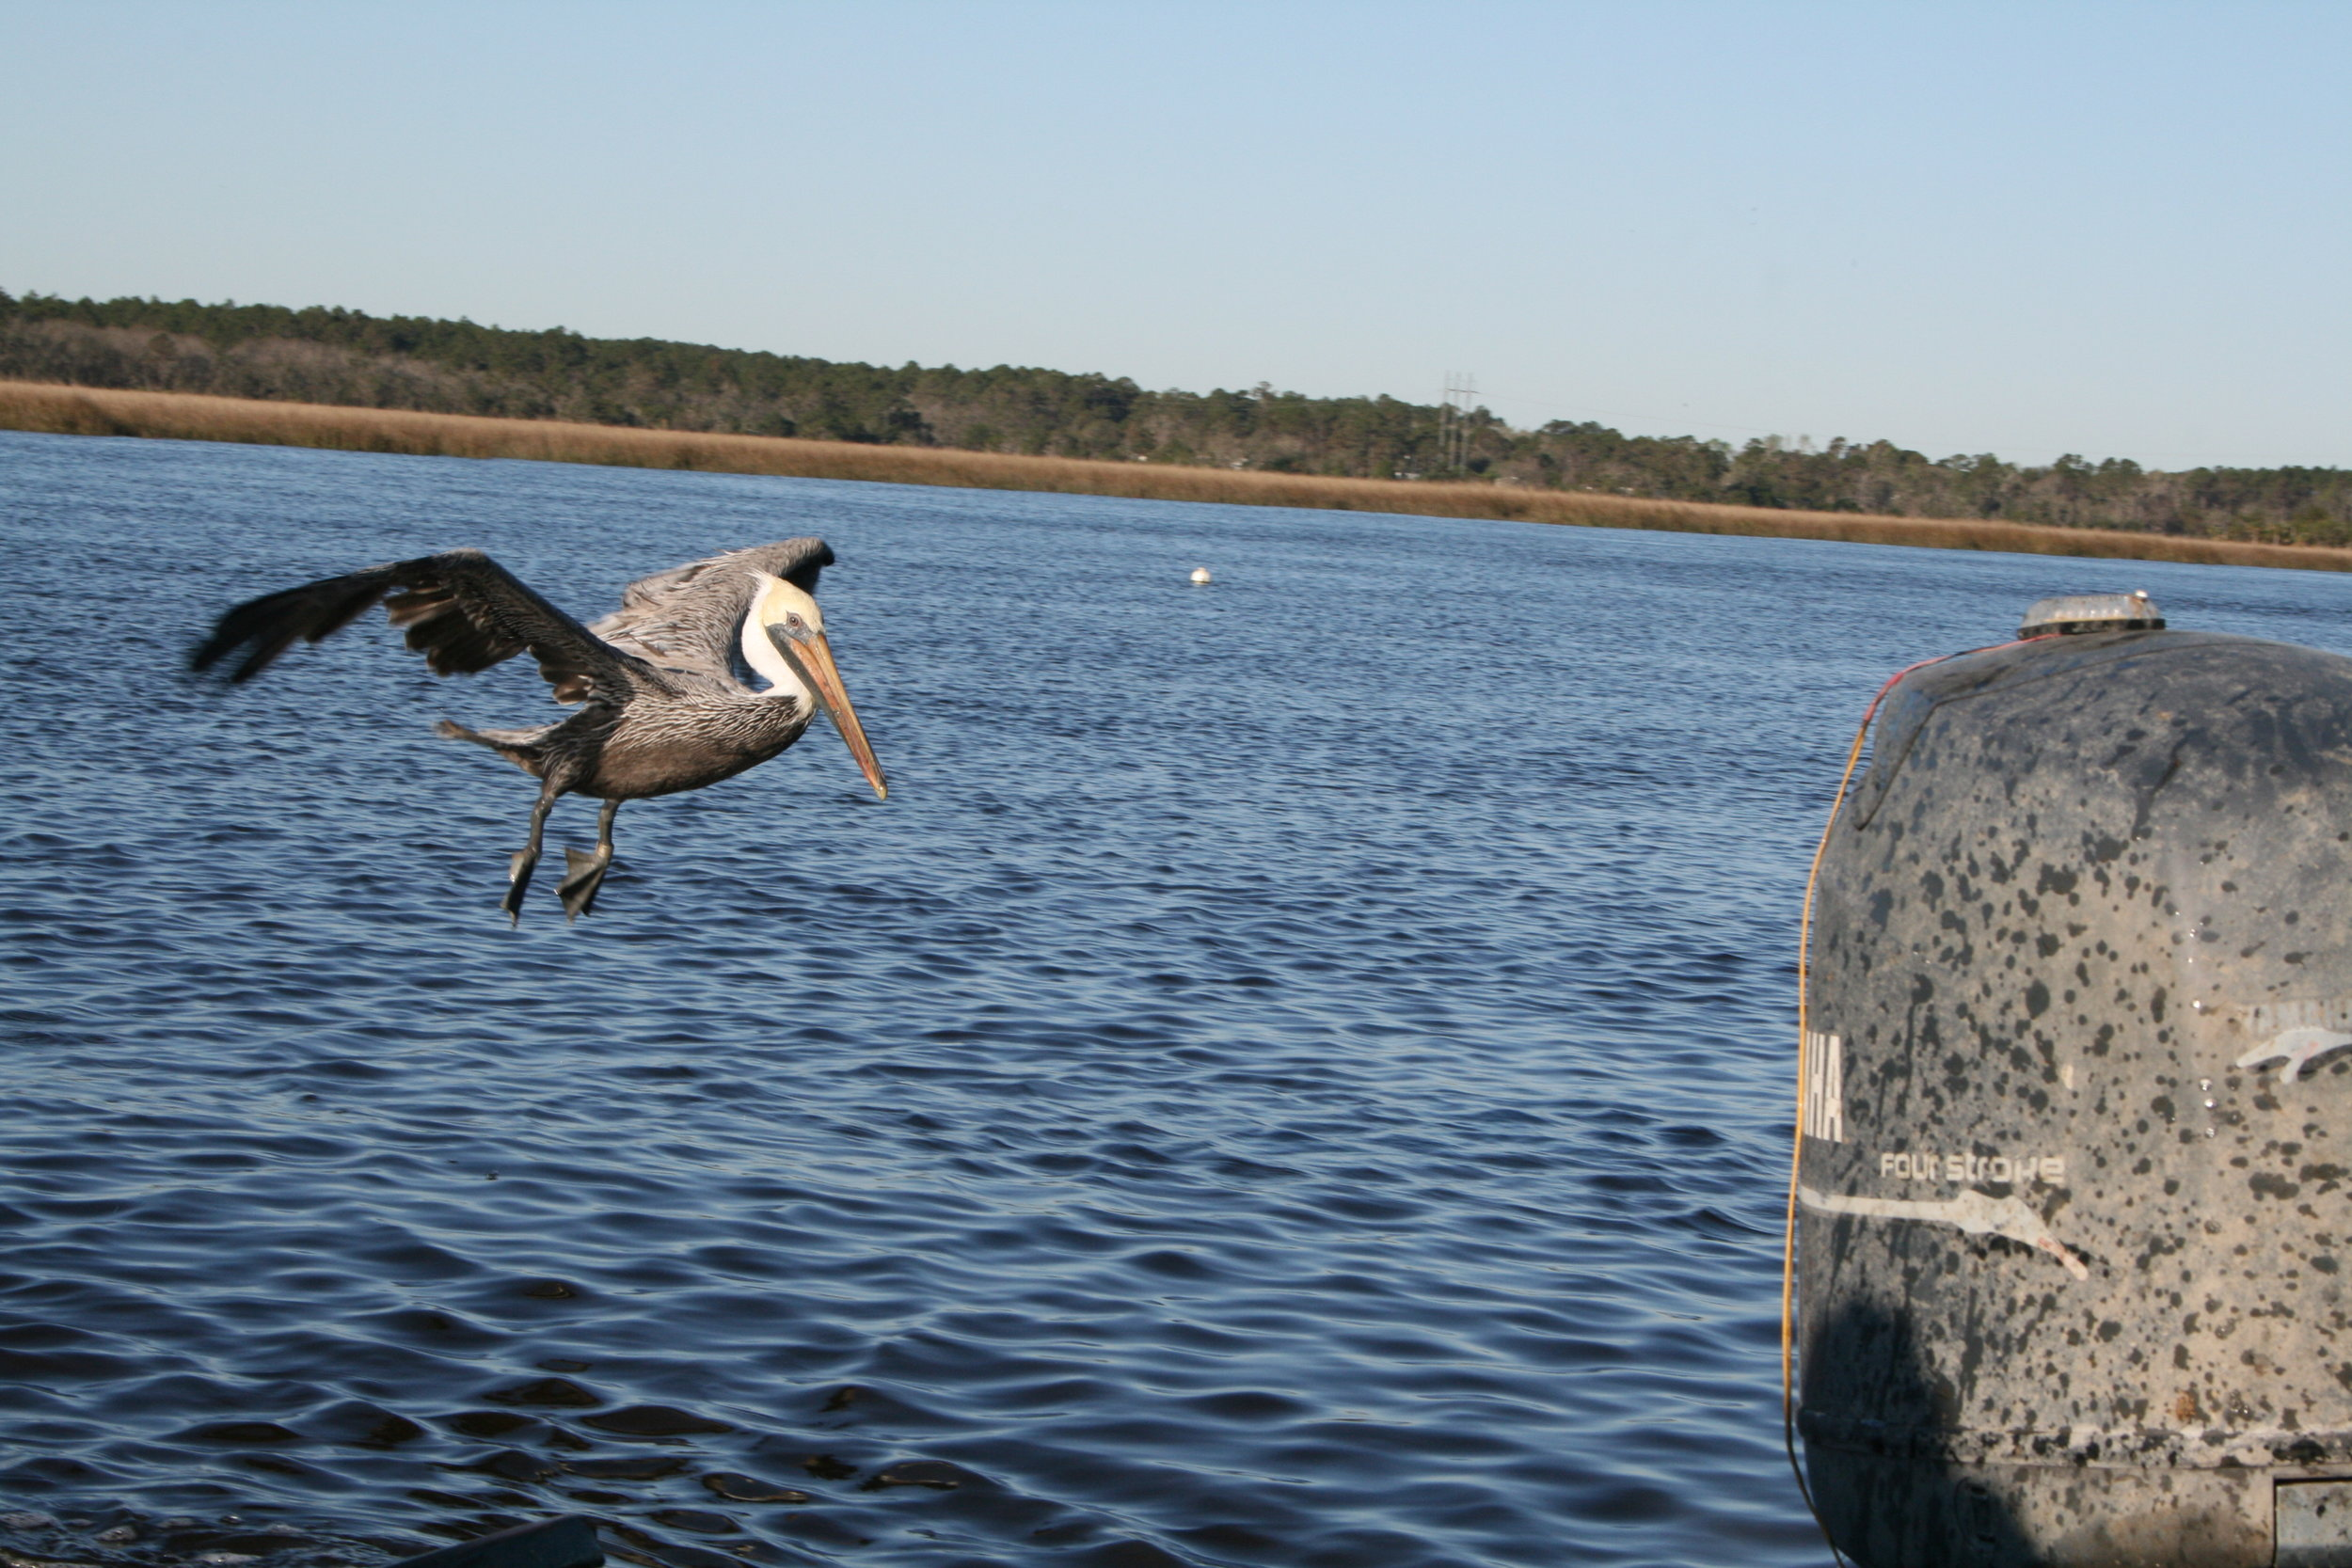 Pelican_swoops_in_hoping_to_capture_a_bite_of_crab_bait..JPG